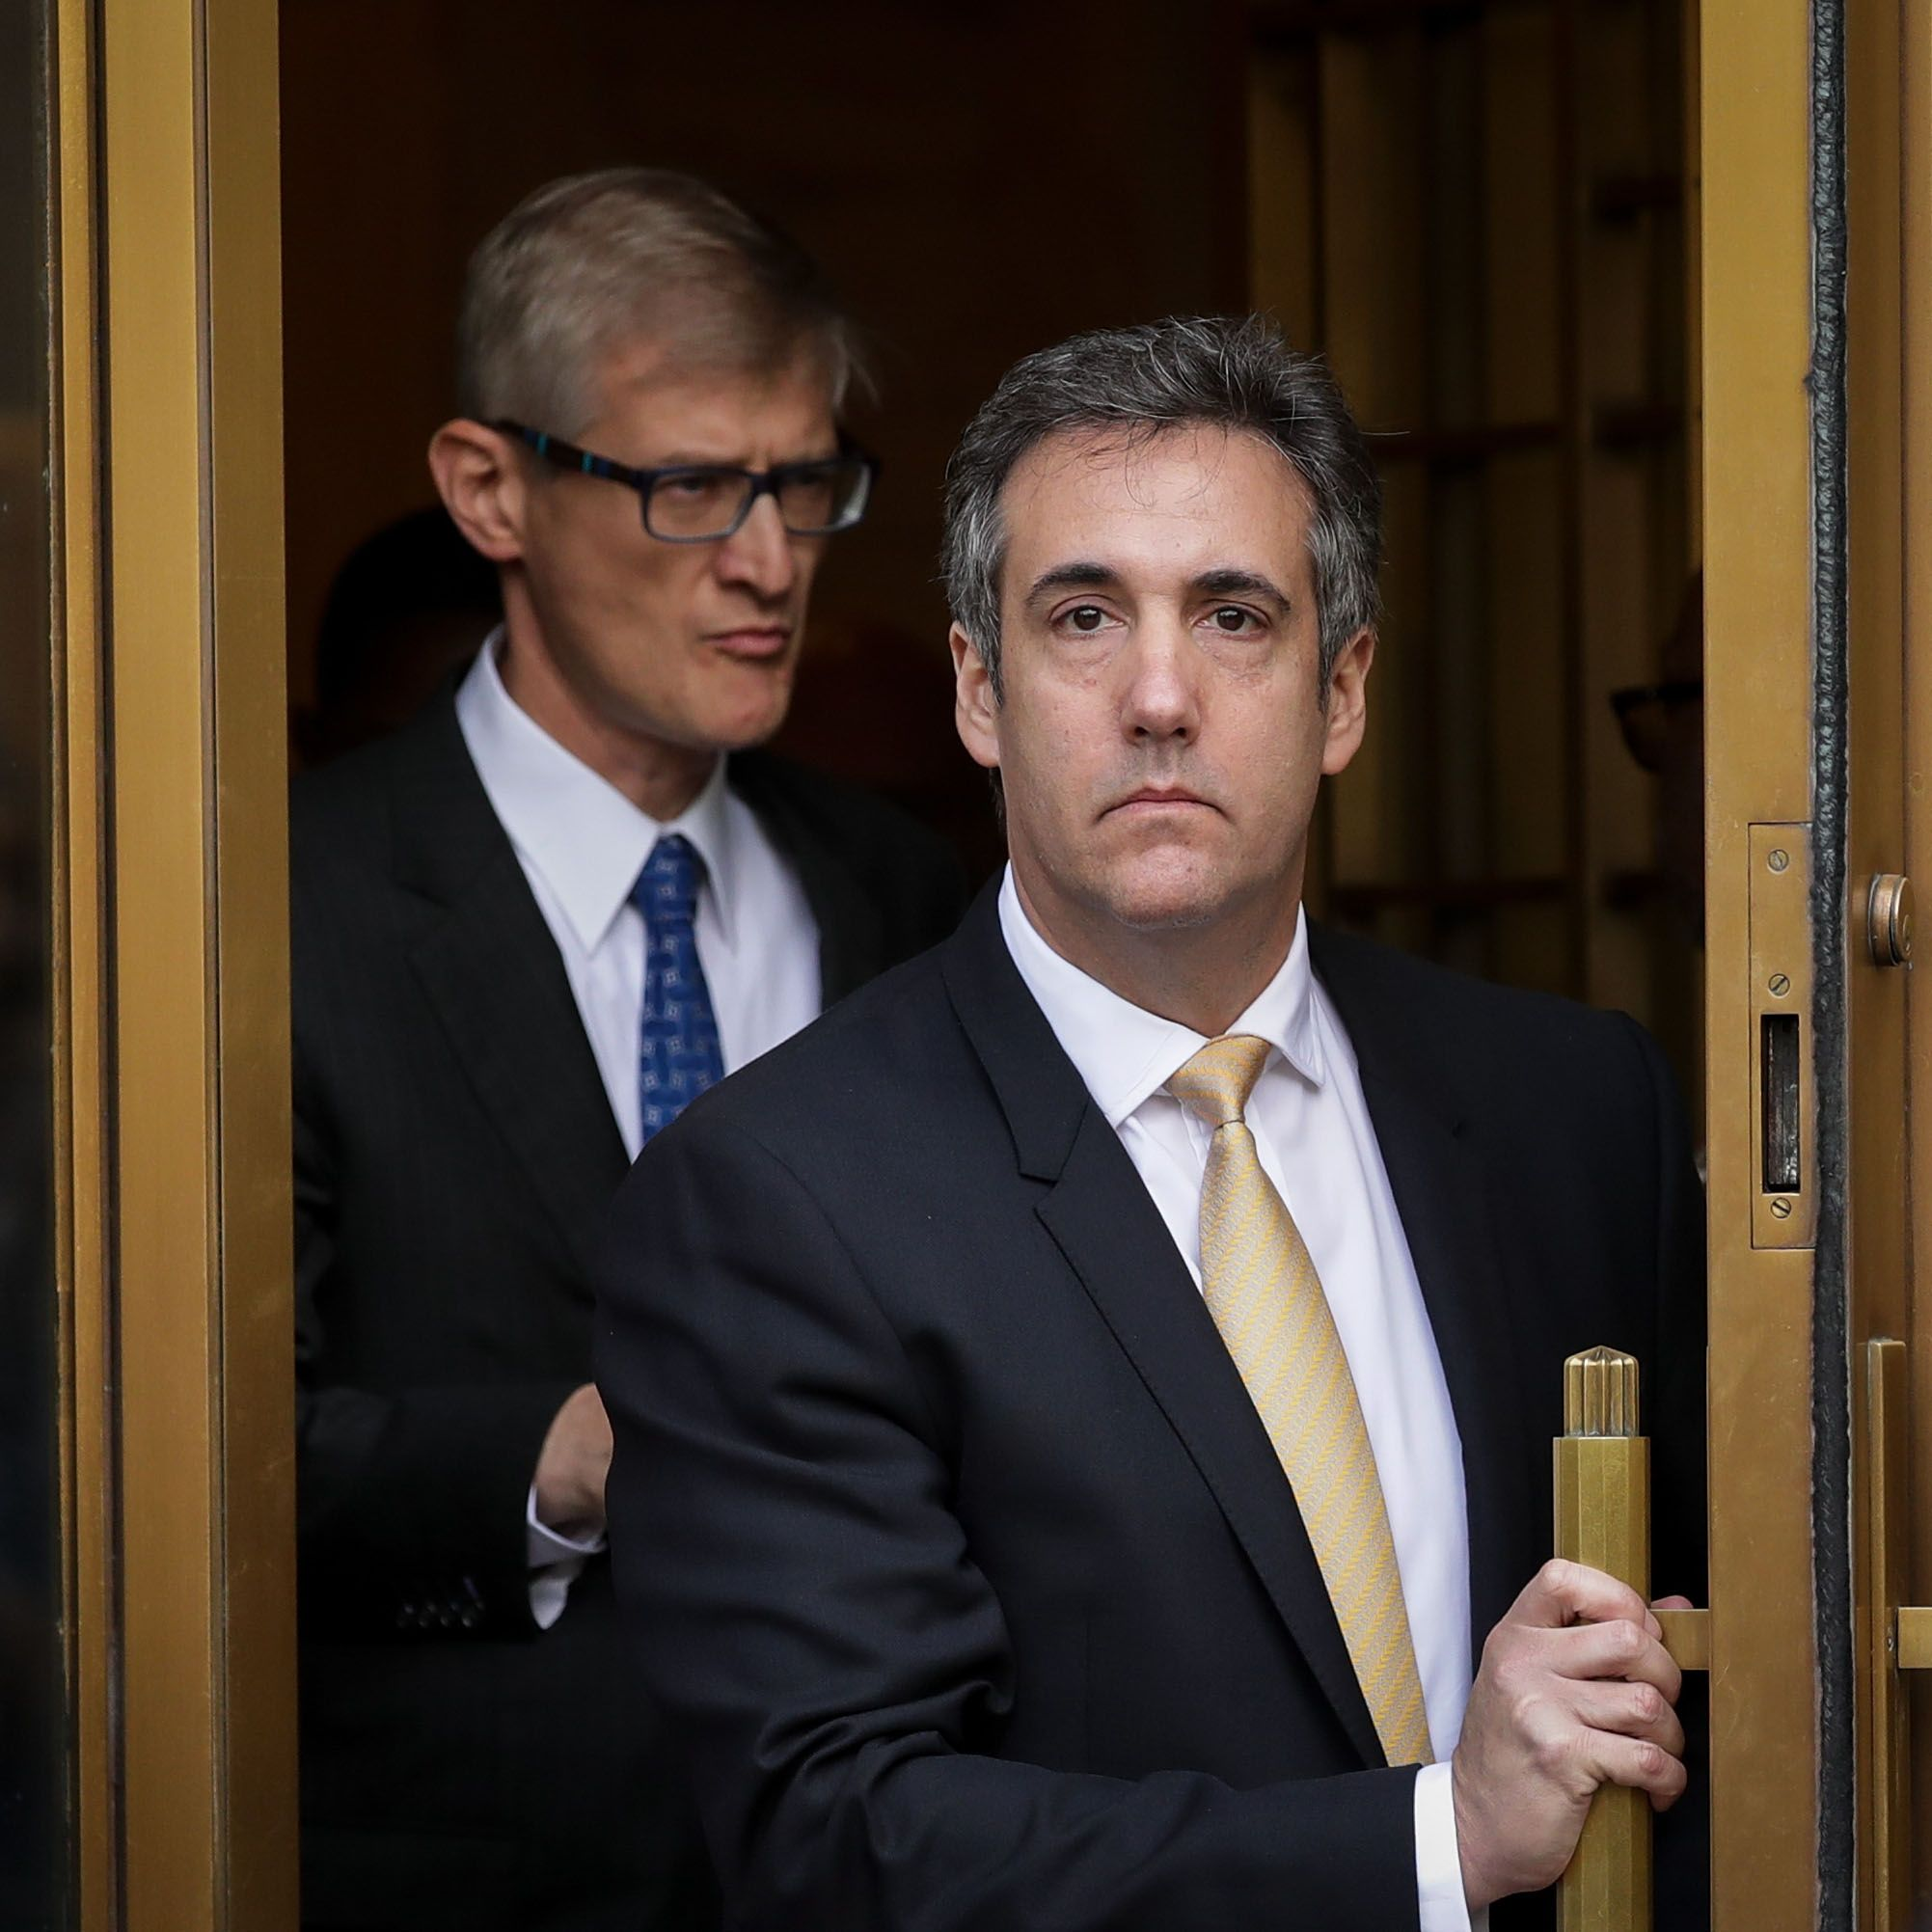 Michael Cohen, President Donald Trump's former personal attorney and fixer, exits federal court, August 21, 2018 in New York City.